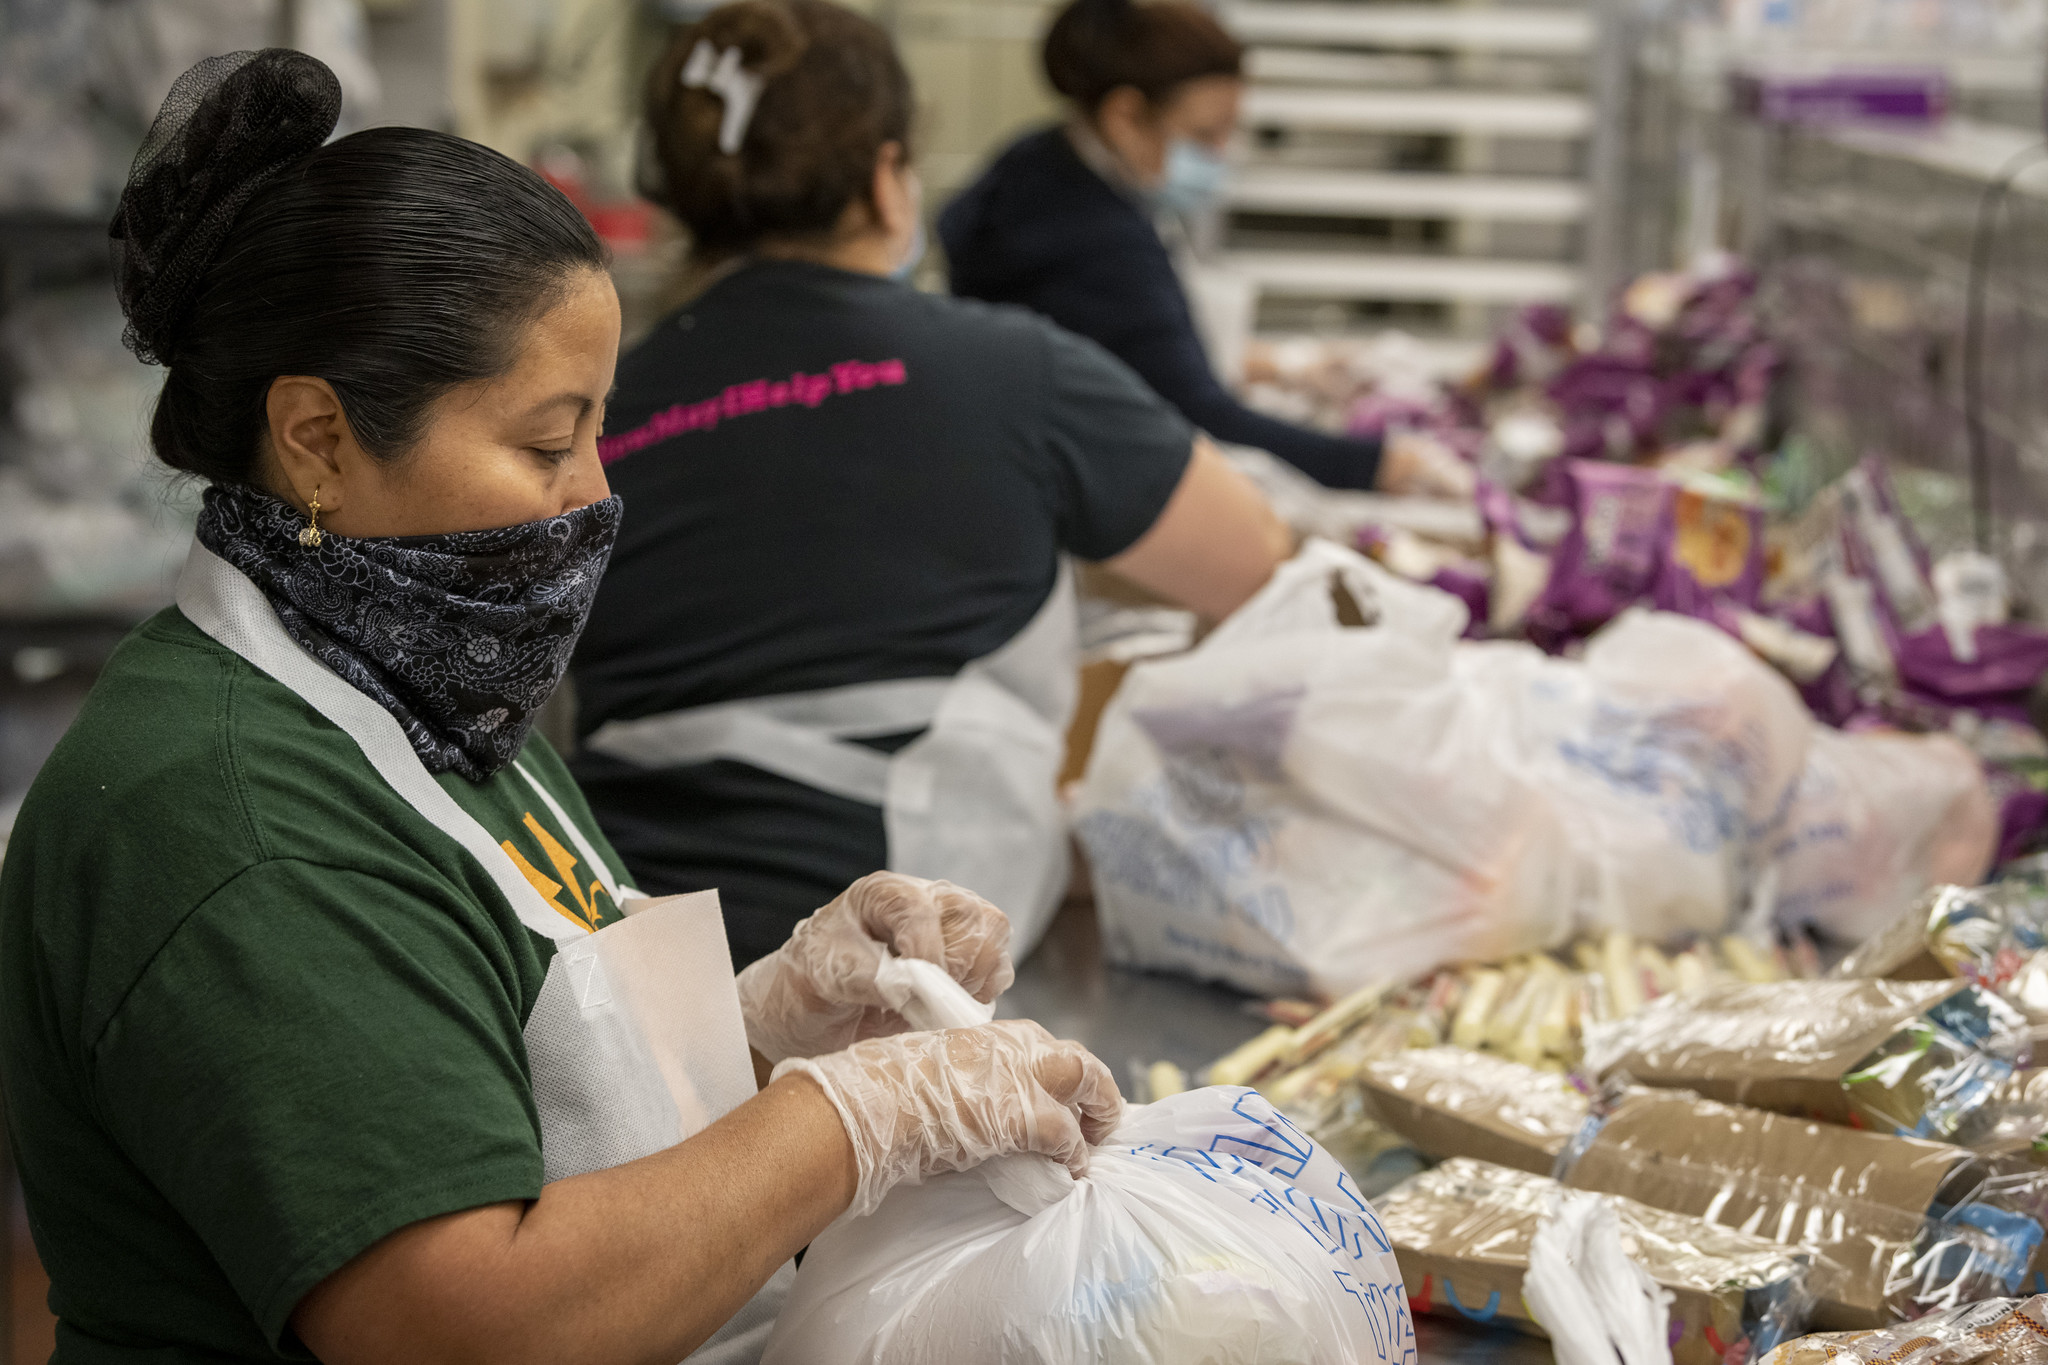 Workers prepare Grab-and-Go Meals in plastic bags.